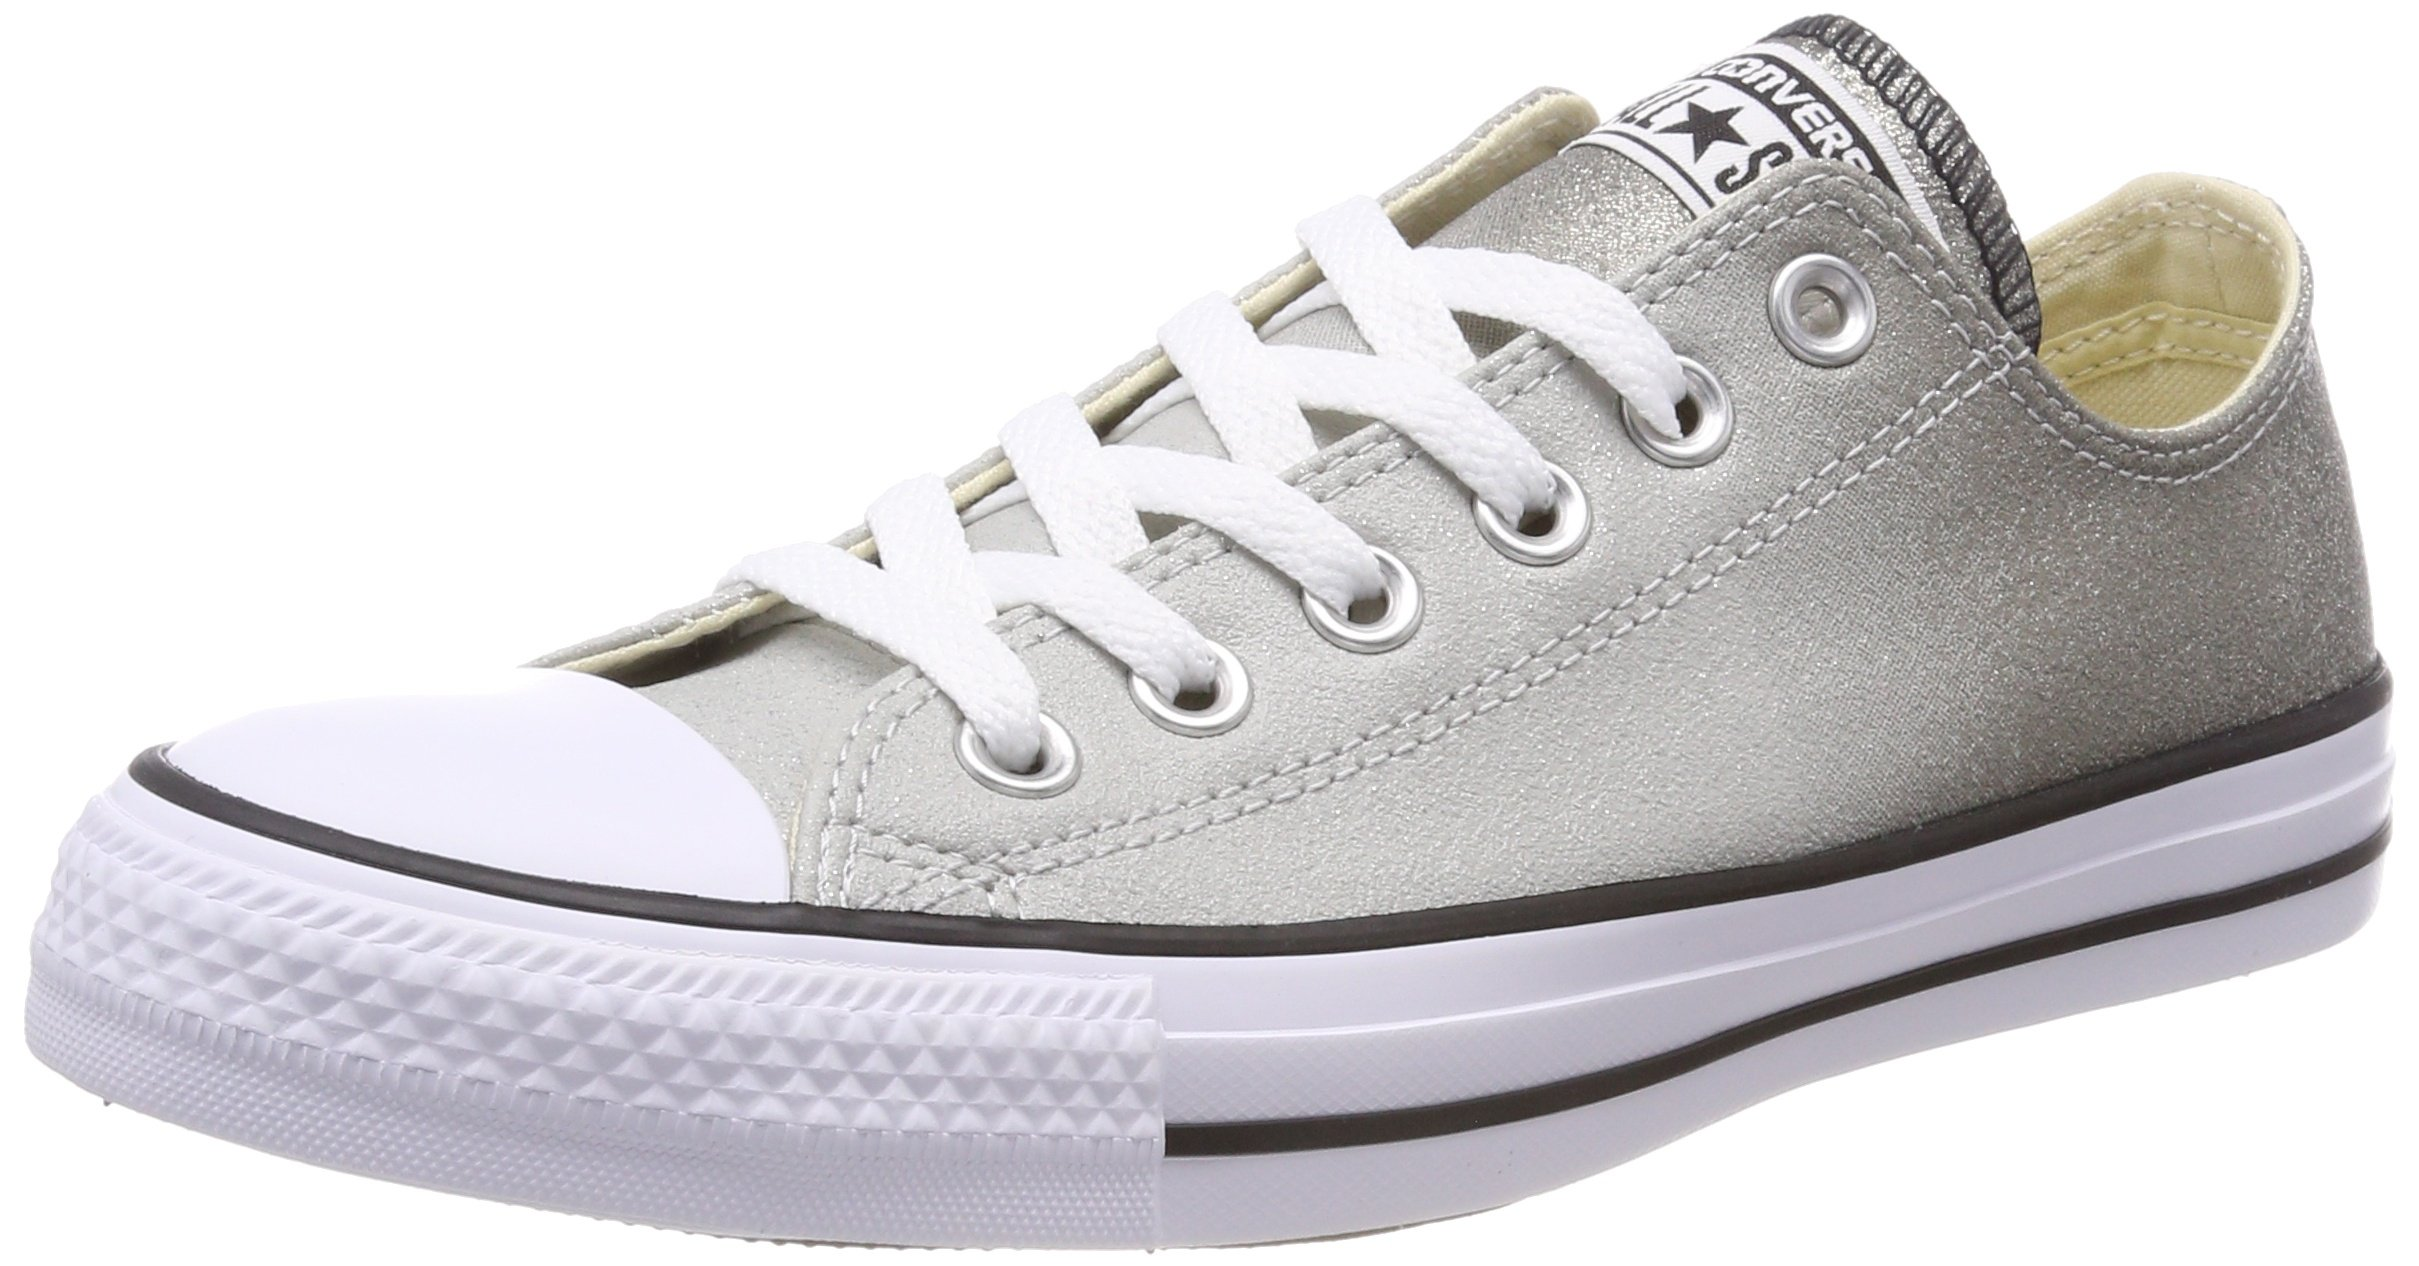 Converse Unisex Chuck Taylor All Star Ox Ash Grey/Black/White Casual Shoe 5.5 Men US / 7.5 Women US